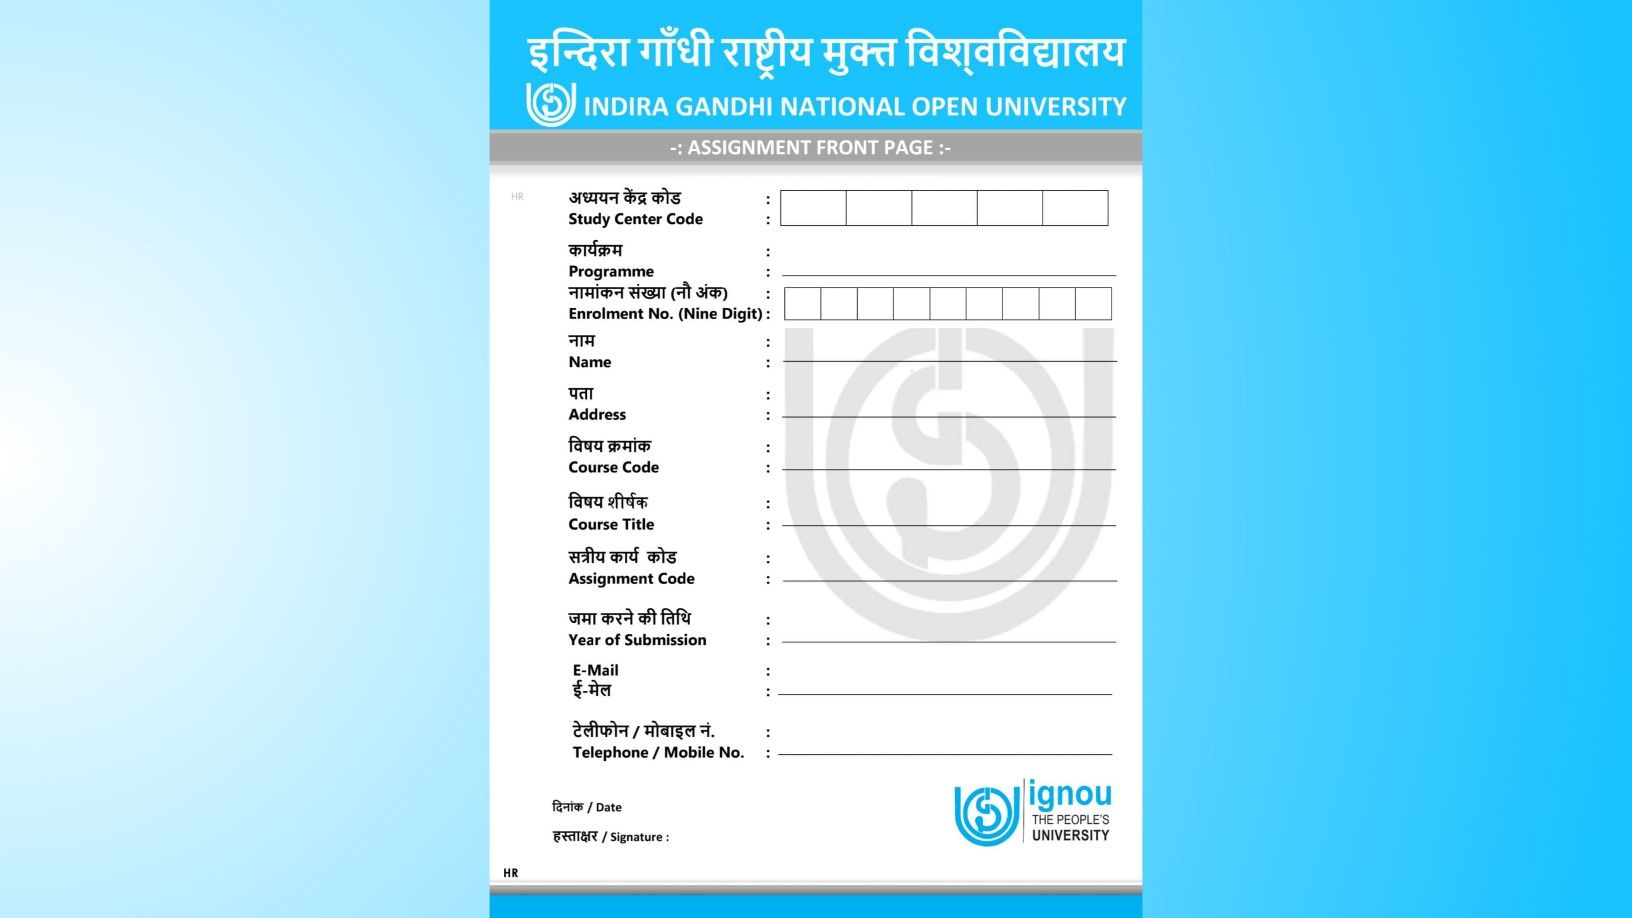 Ignou assignment front page pdfignou cover page pdf